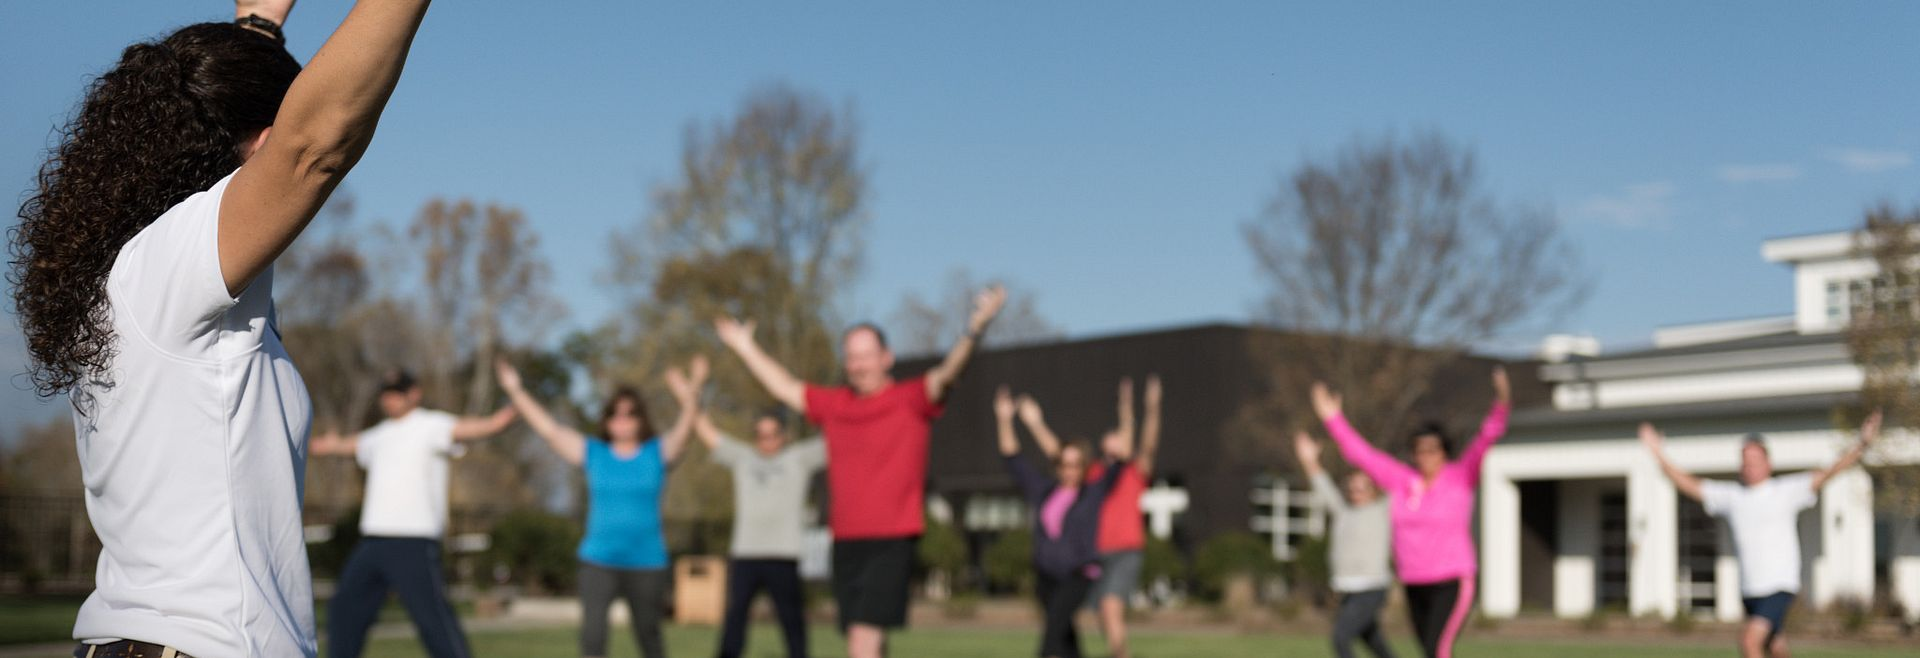 Trilogy Lake Norman Join the Movement™ - Day Pass Group Exercise Class